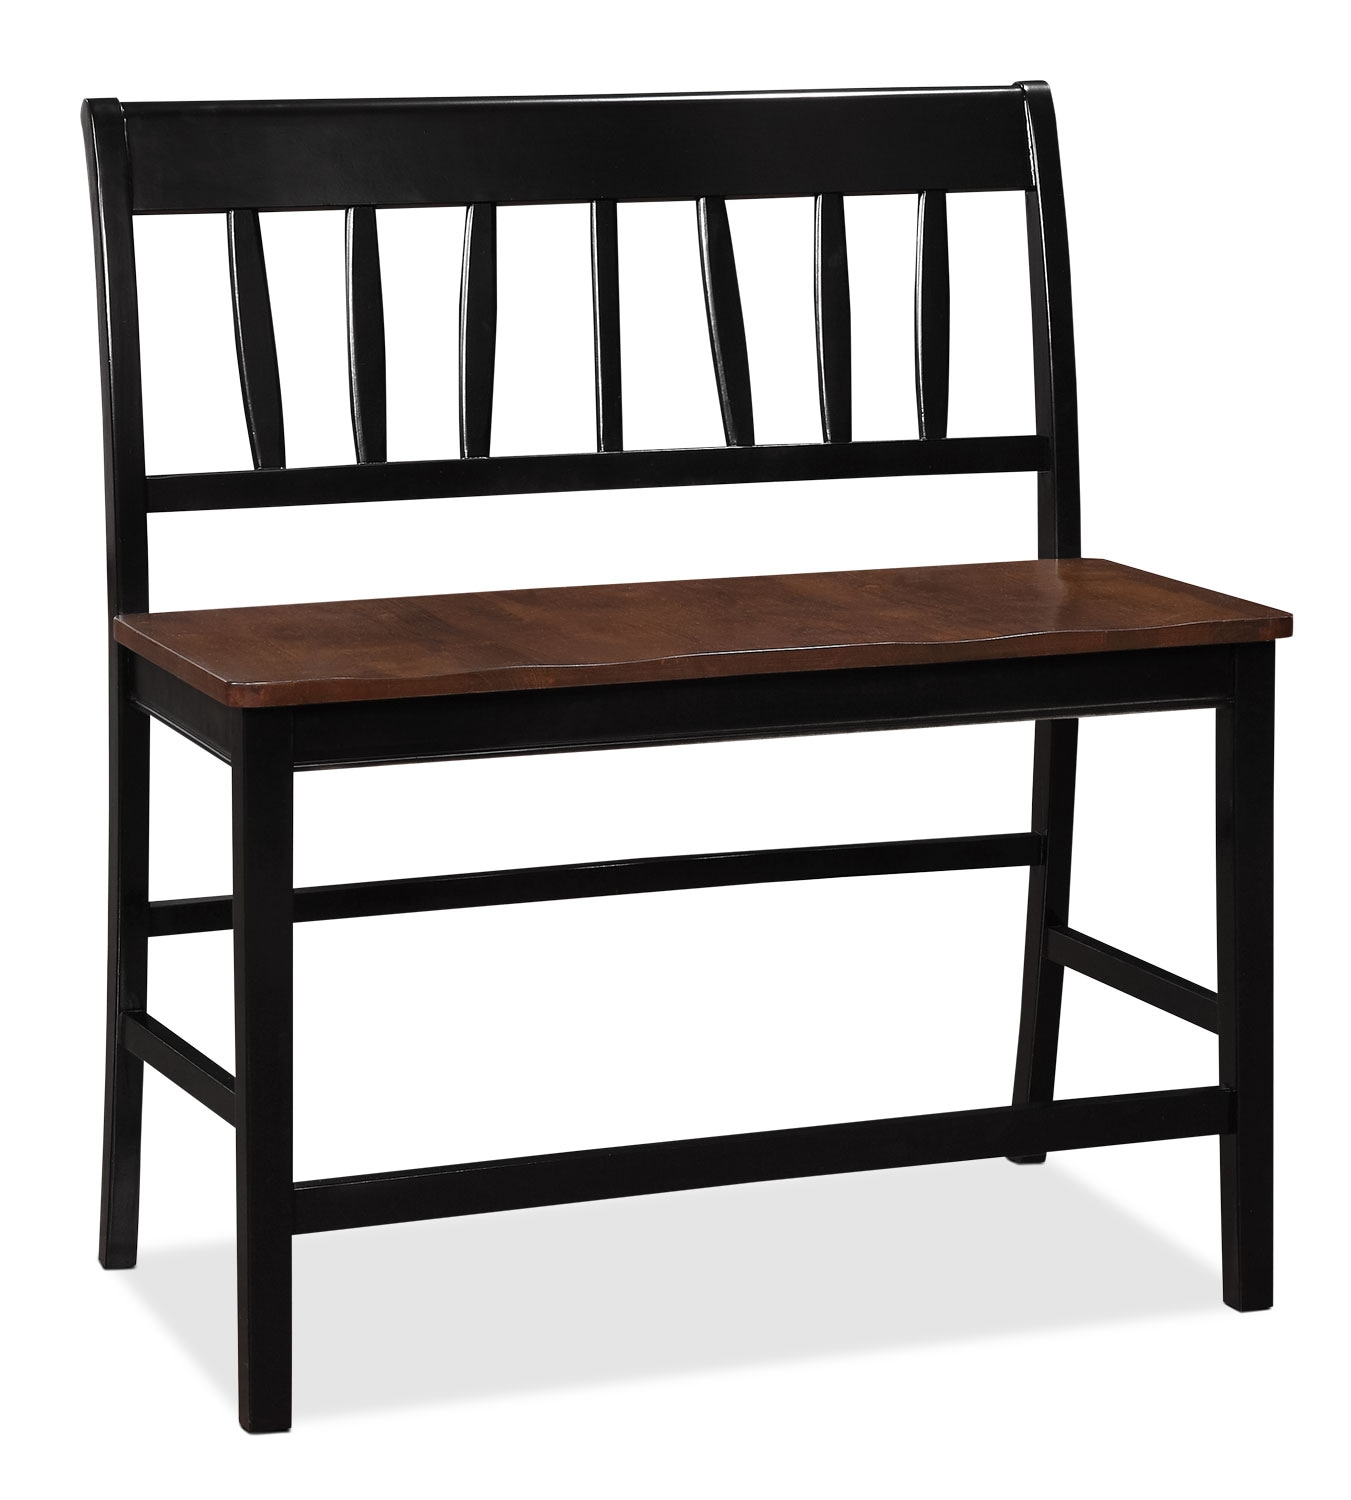 Nyla Counter-Height Dining Bench – Black and Cherry